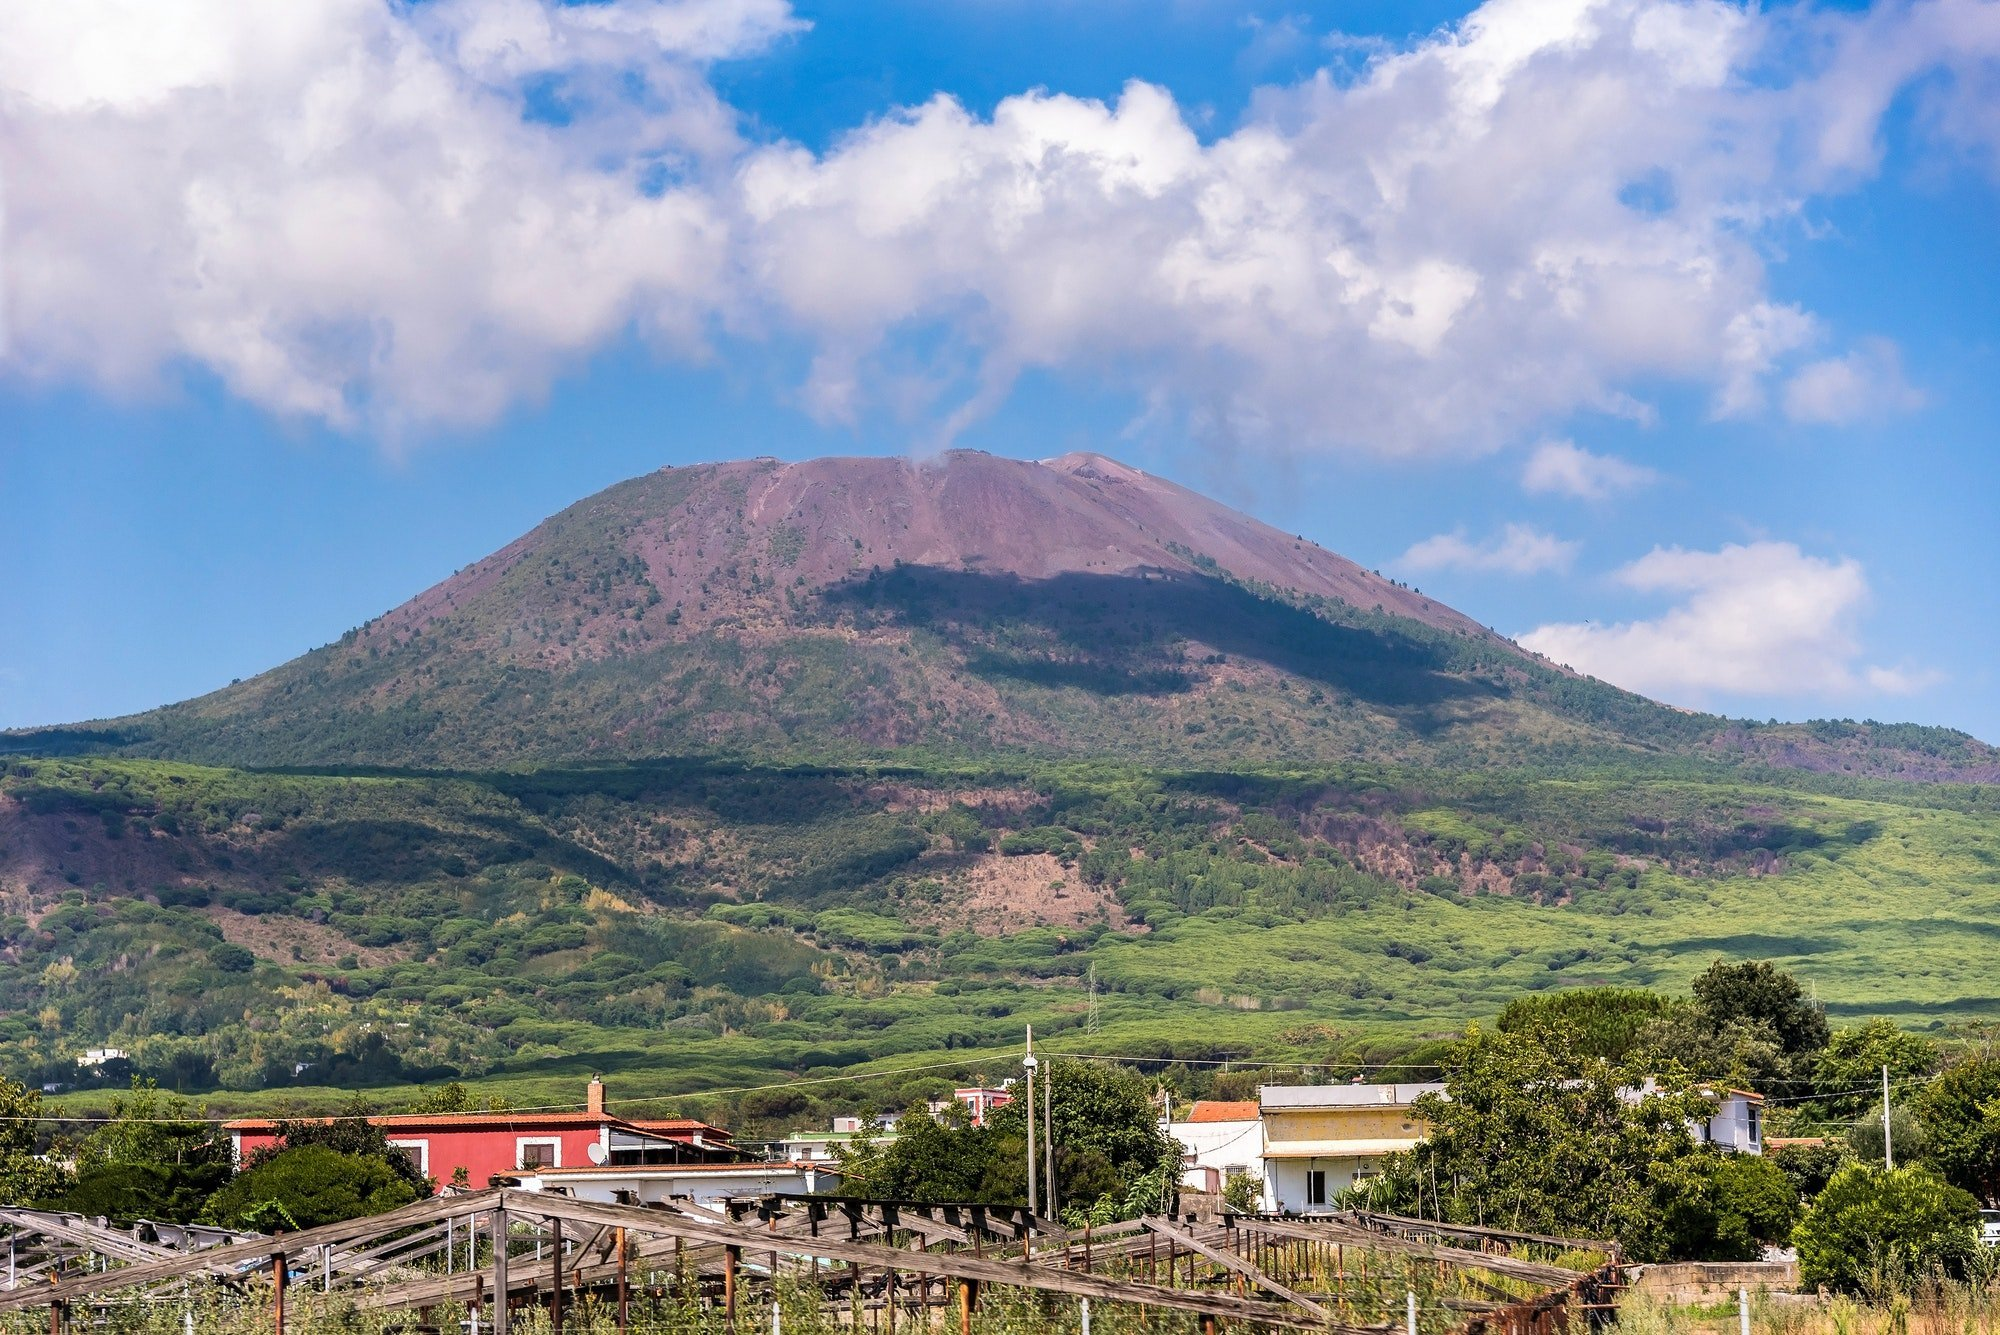 View of Mount Vesuvius on a sunny day